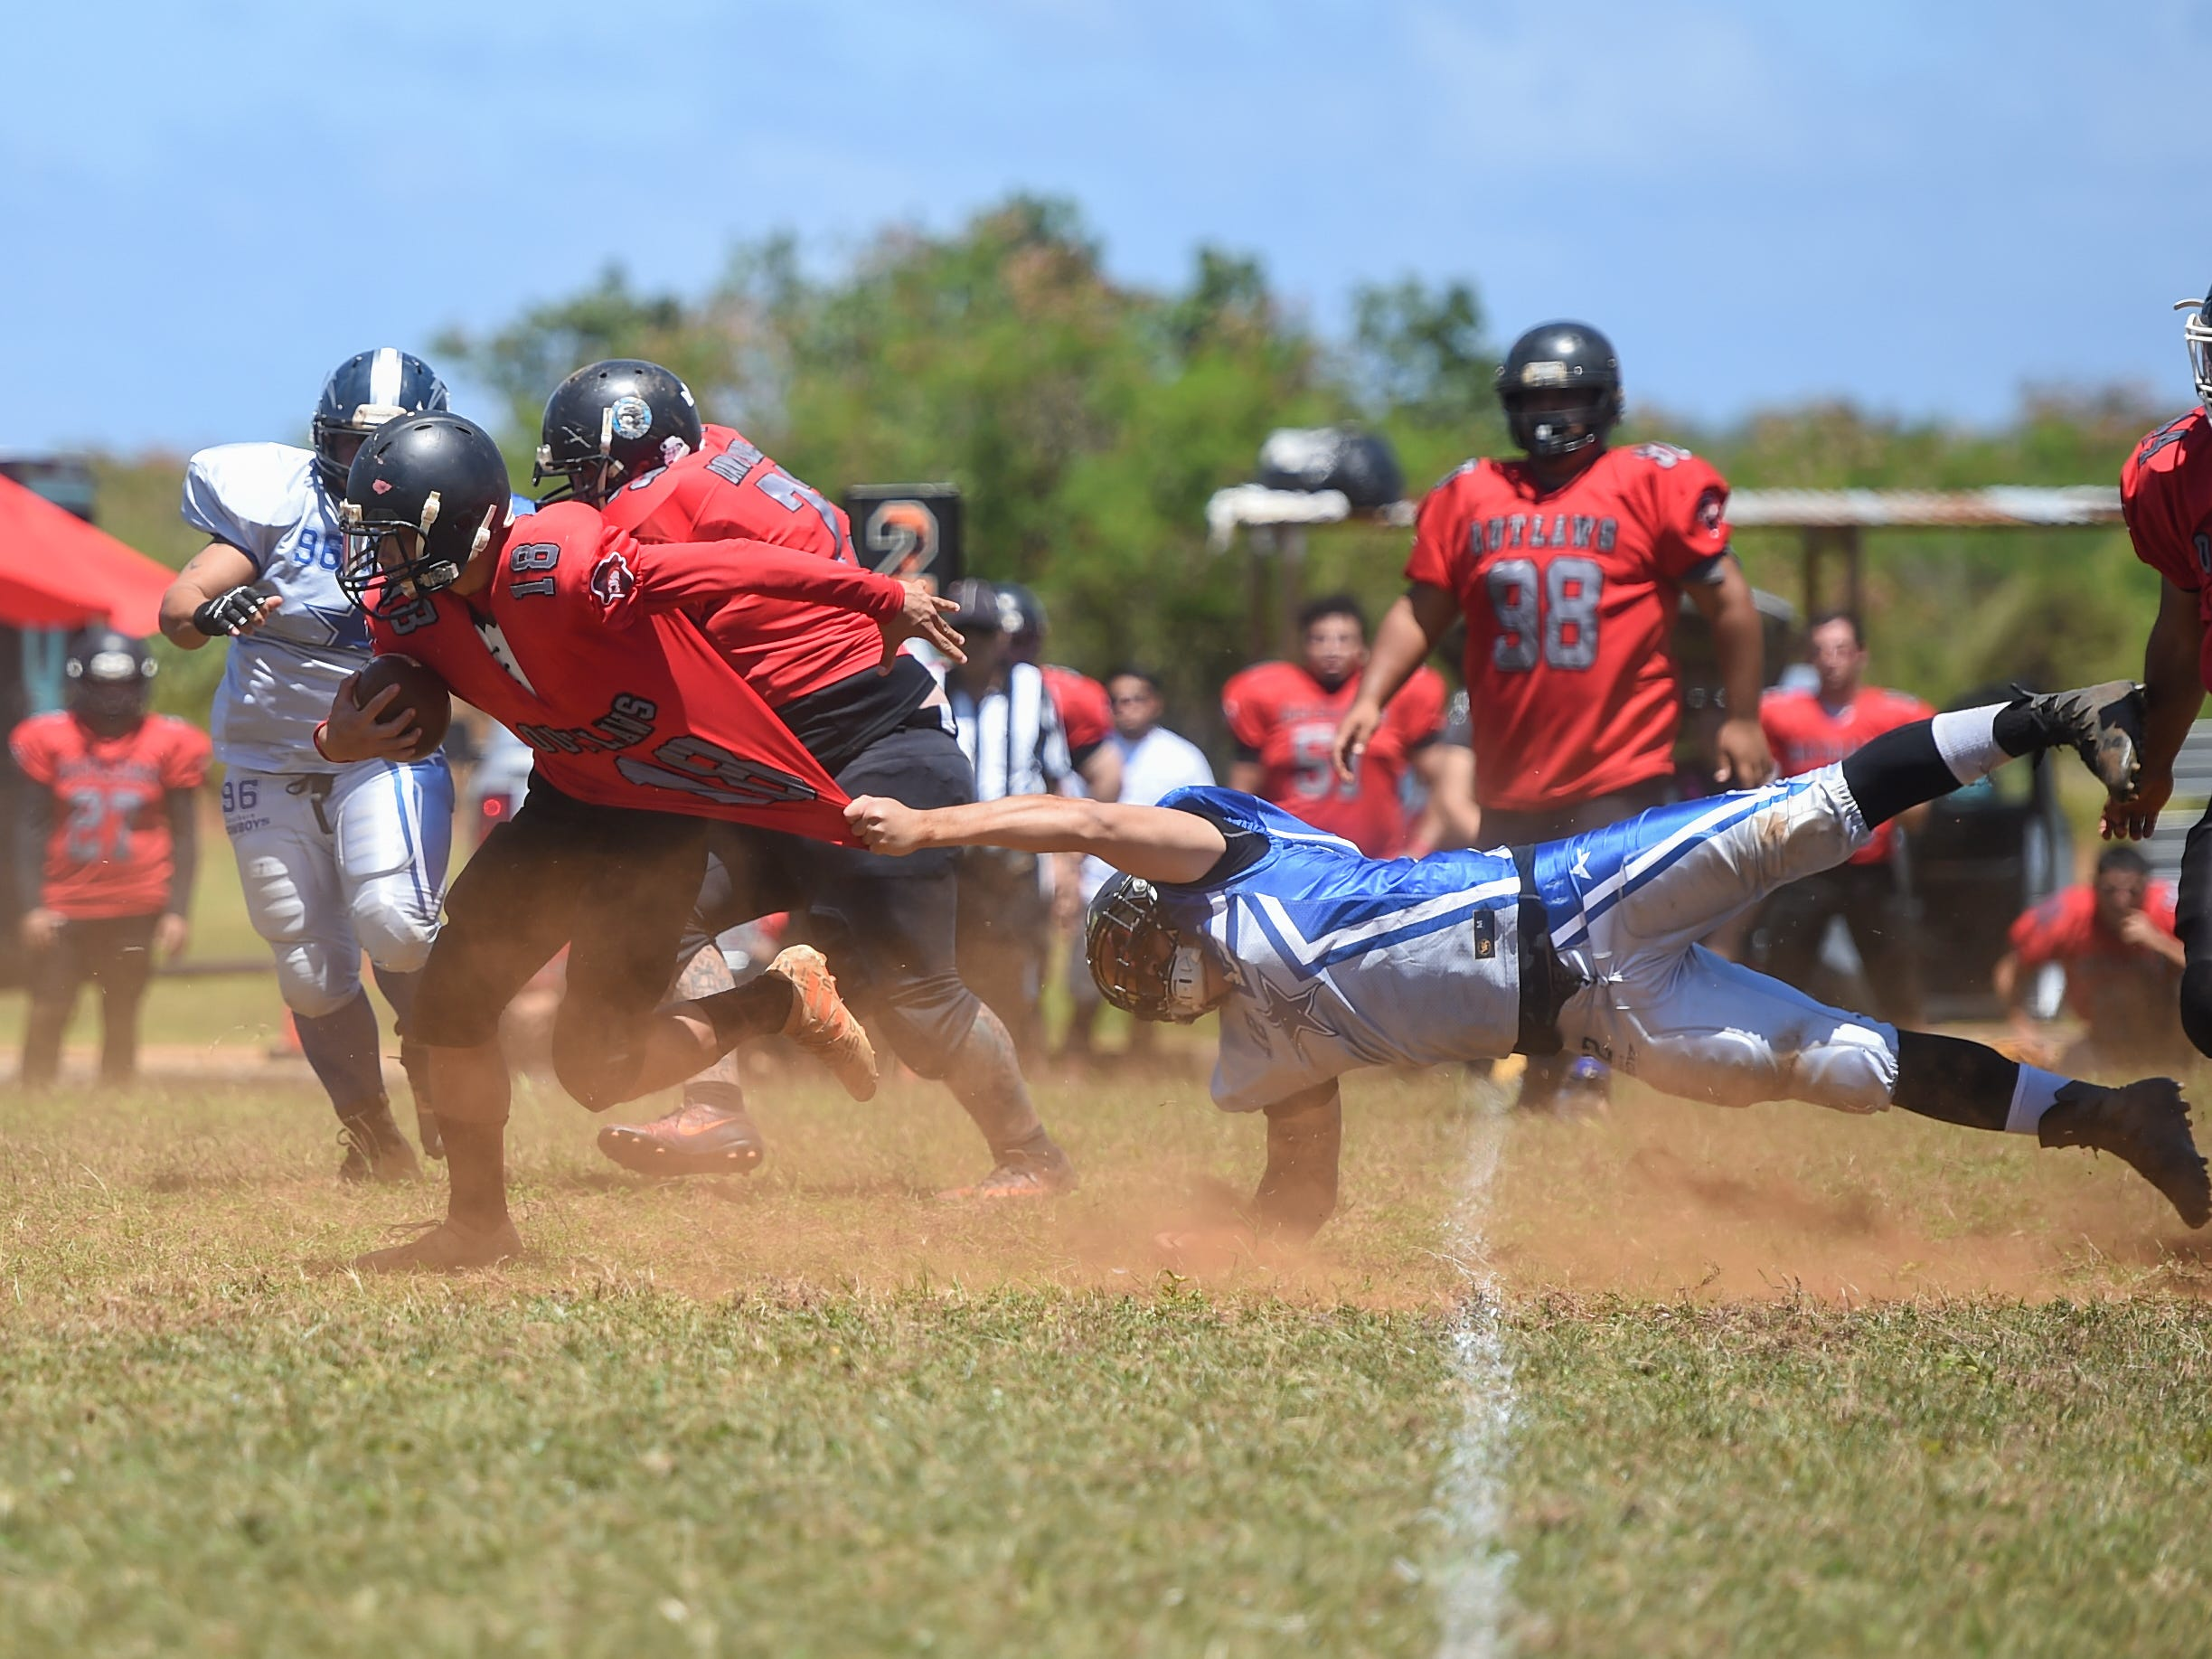 Outlaws player Justin Tanguileg (18) is pursued by Southern Cowboys' Dom Flores (12) during a Budweiser Guahan Varsity Football League game at Eagles Field in Mangilao, March 9, 2019.